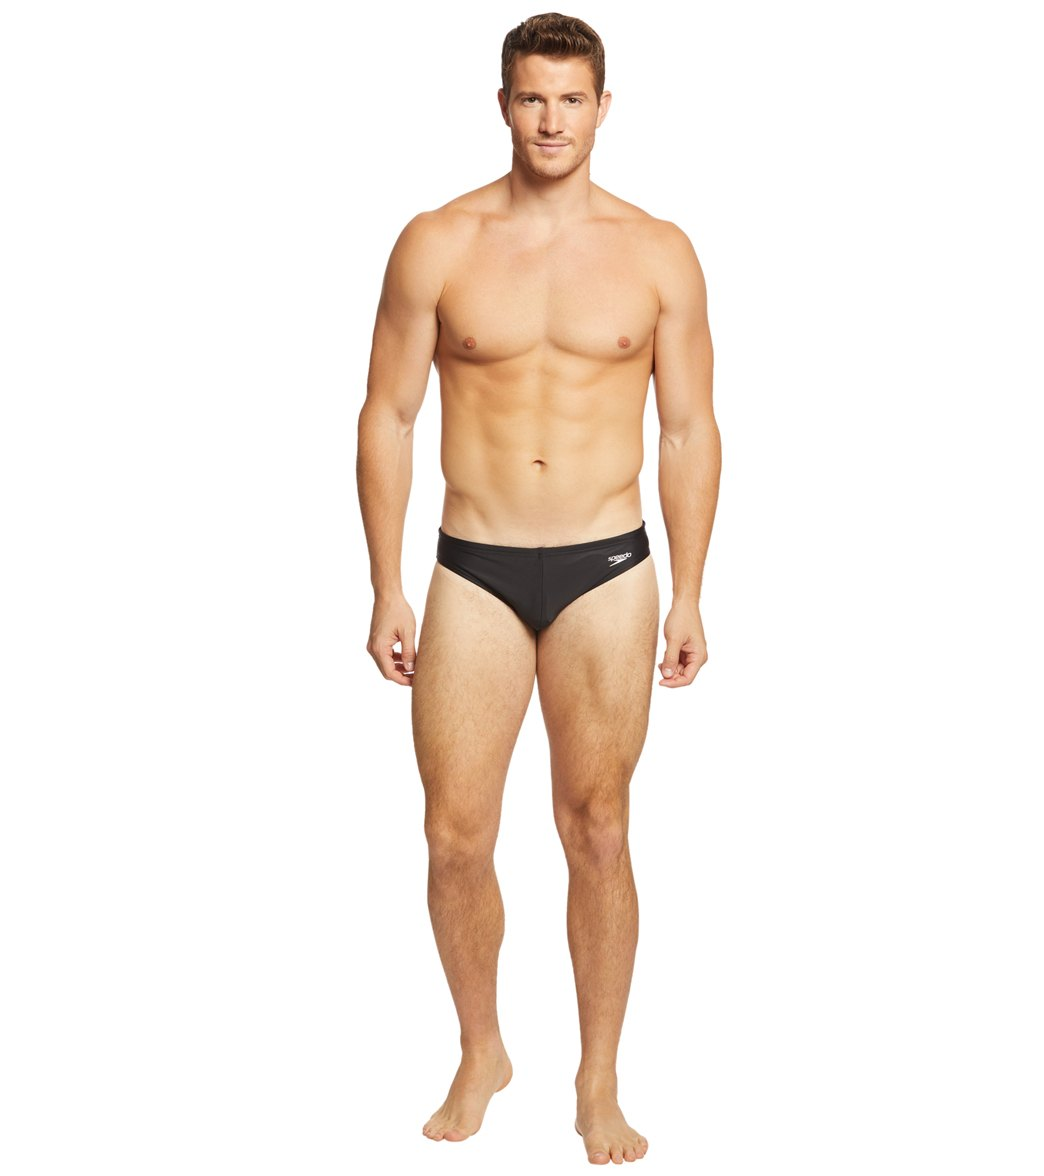 ad83a1a02823a Speedo Men's Solar 1